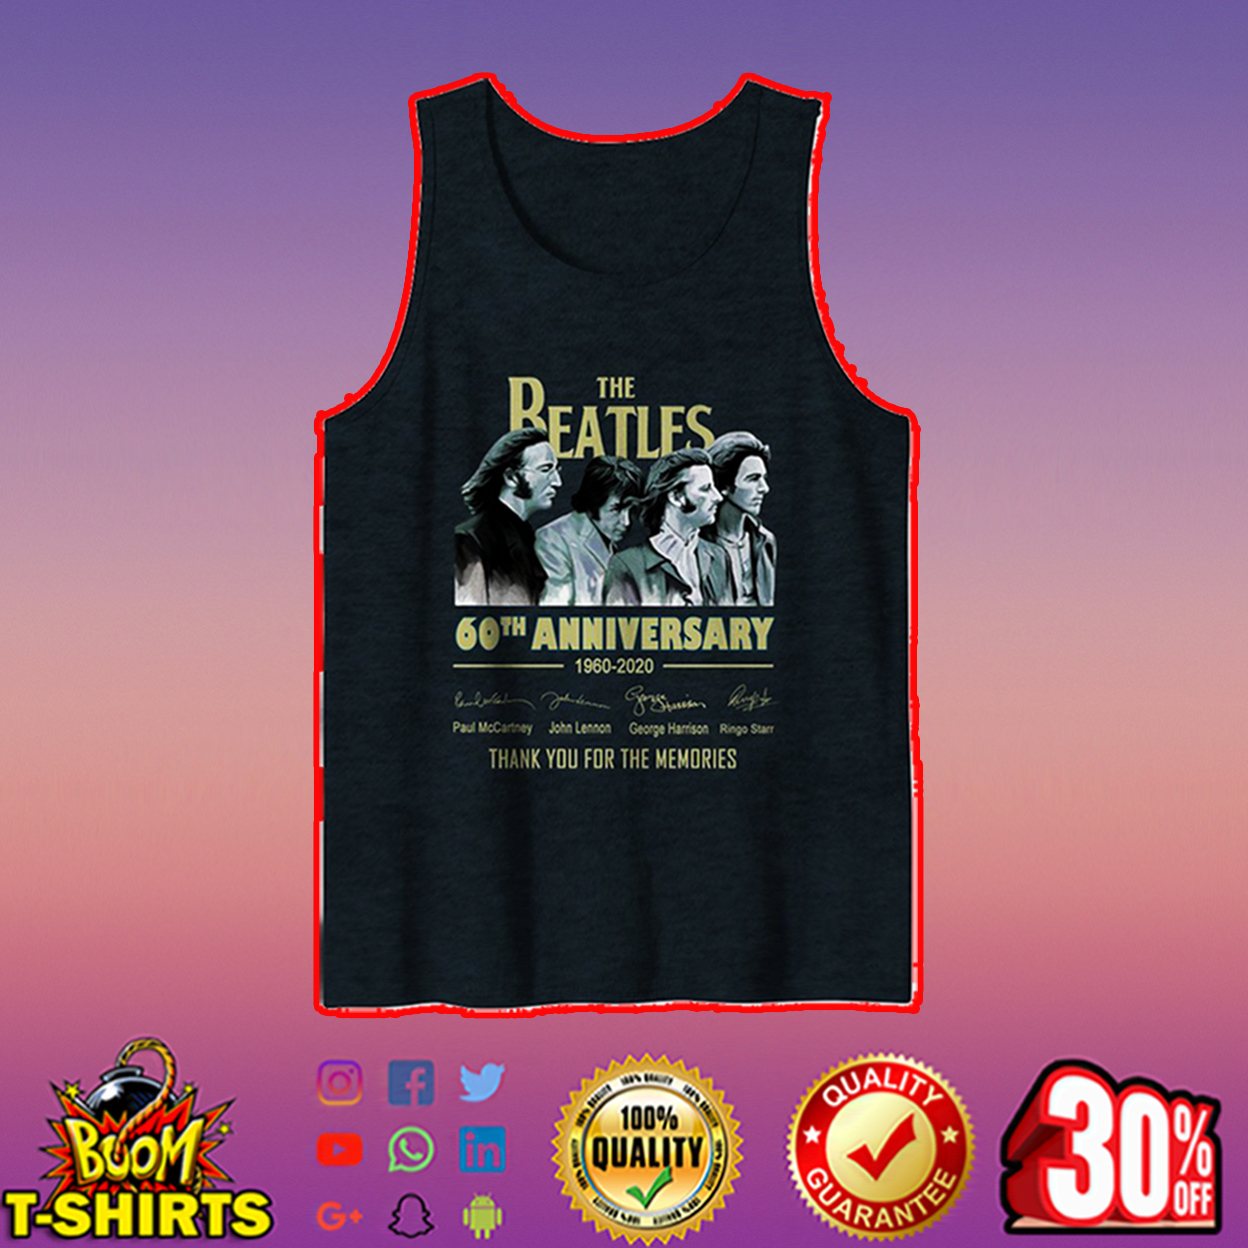 The Beatles 60th anniversary thank you for the memories tank top